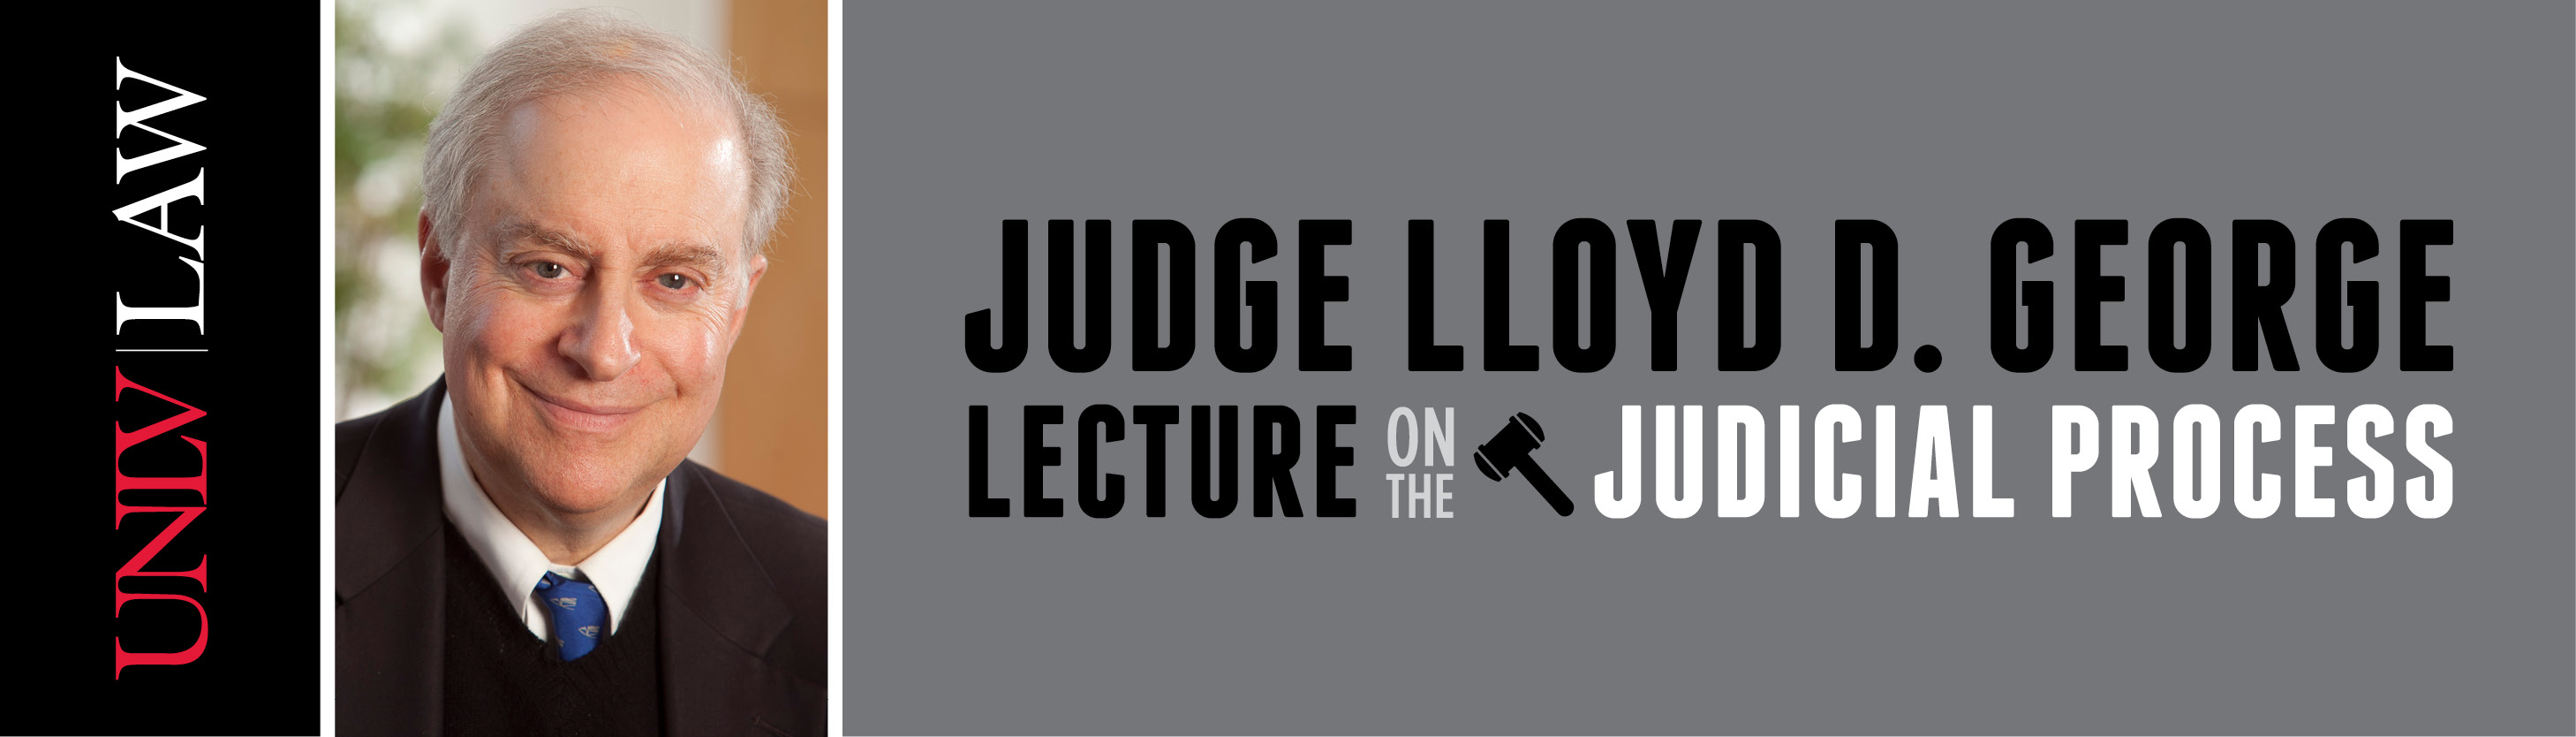 Judge Lloyd D. George Lecture on the Judicial Process